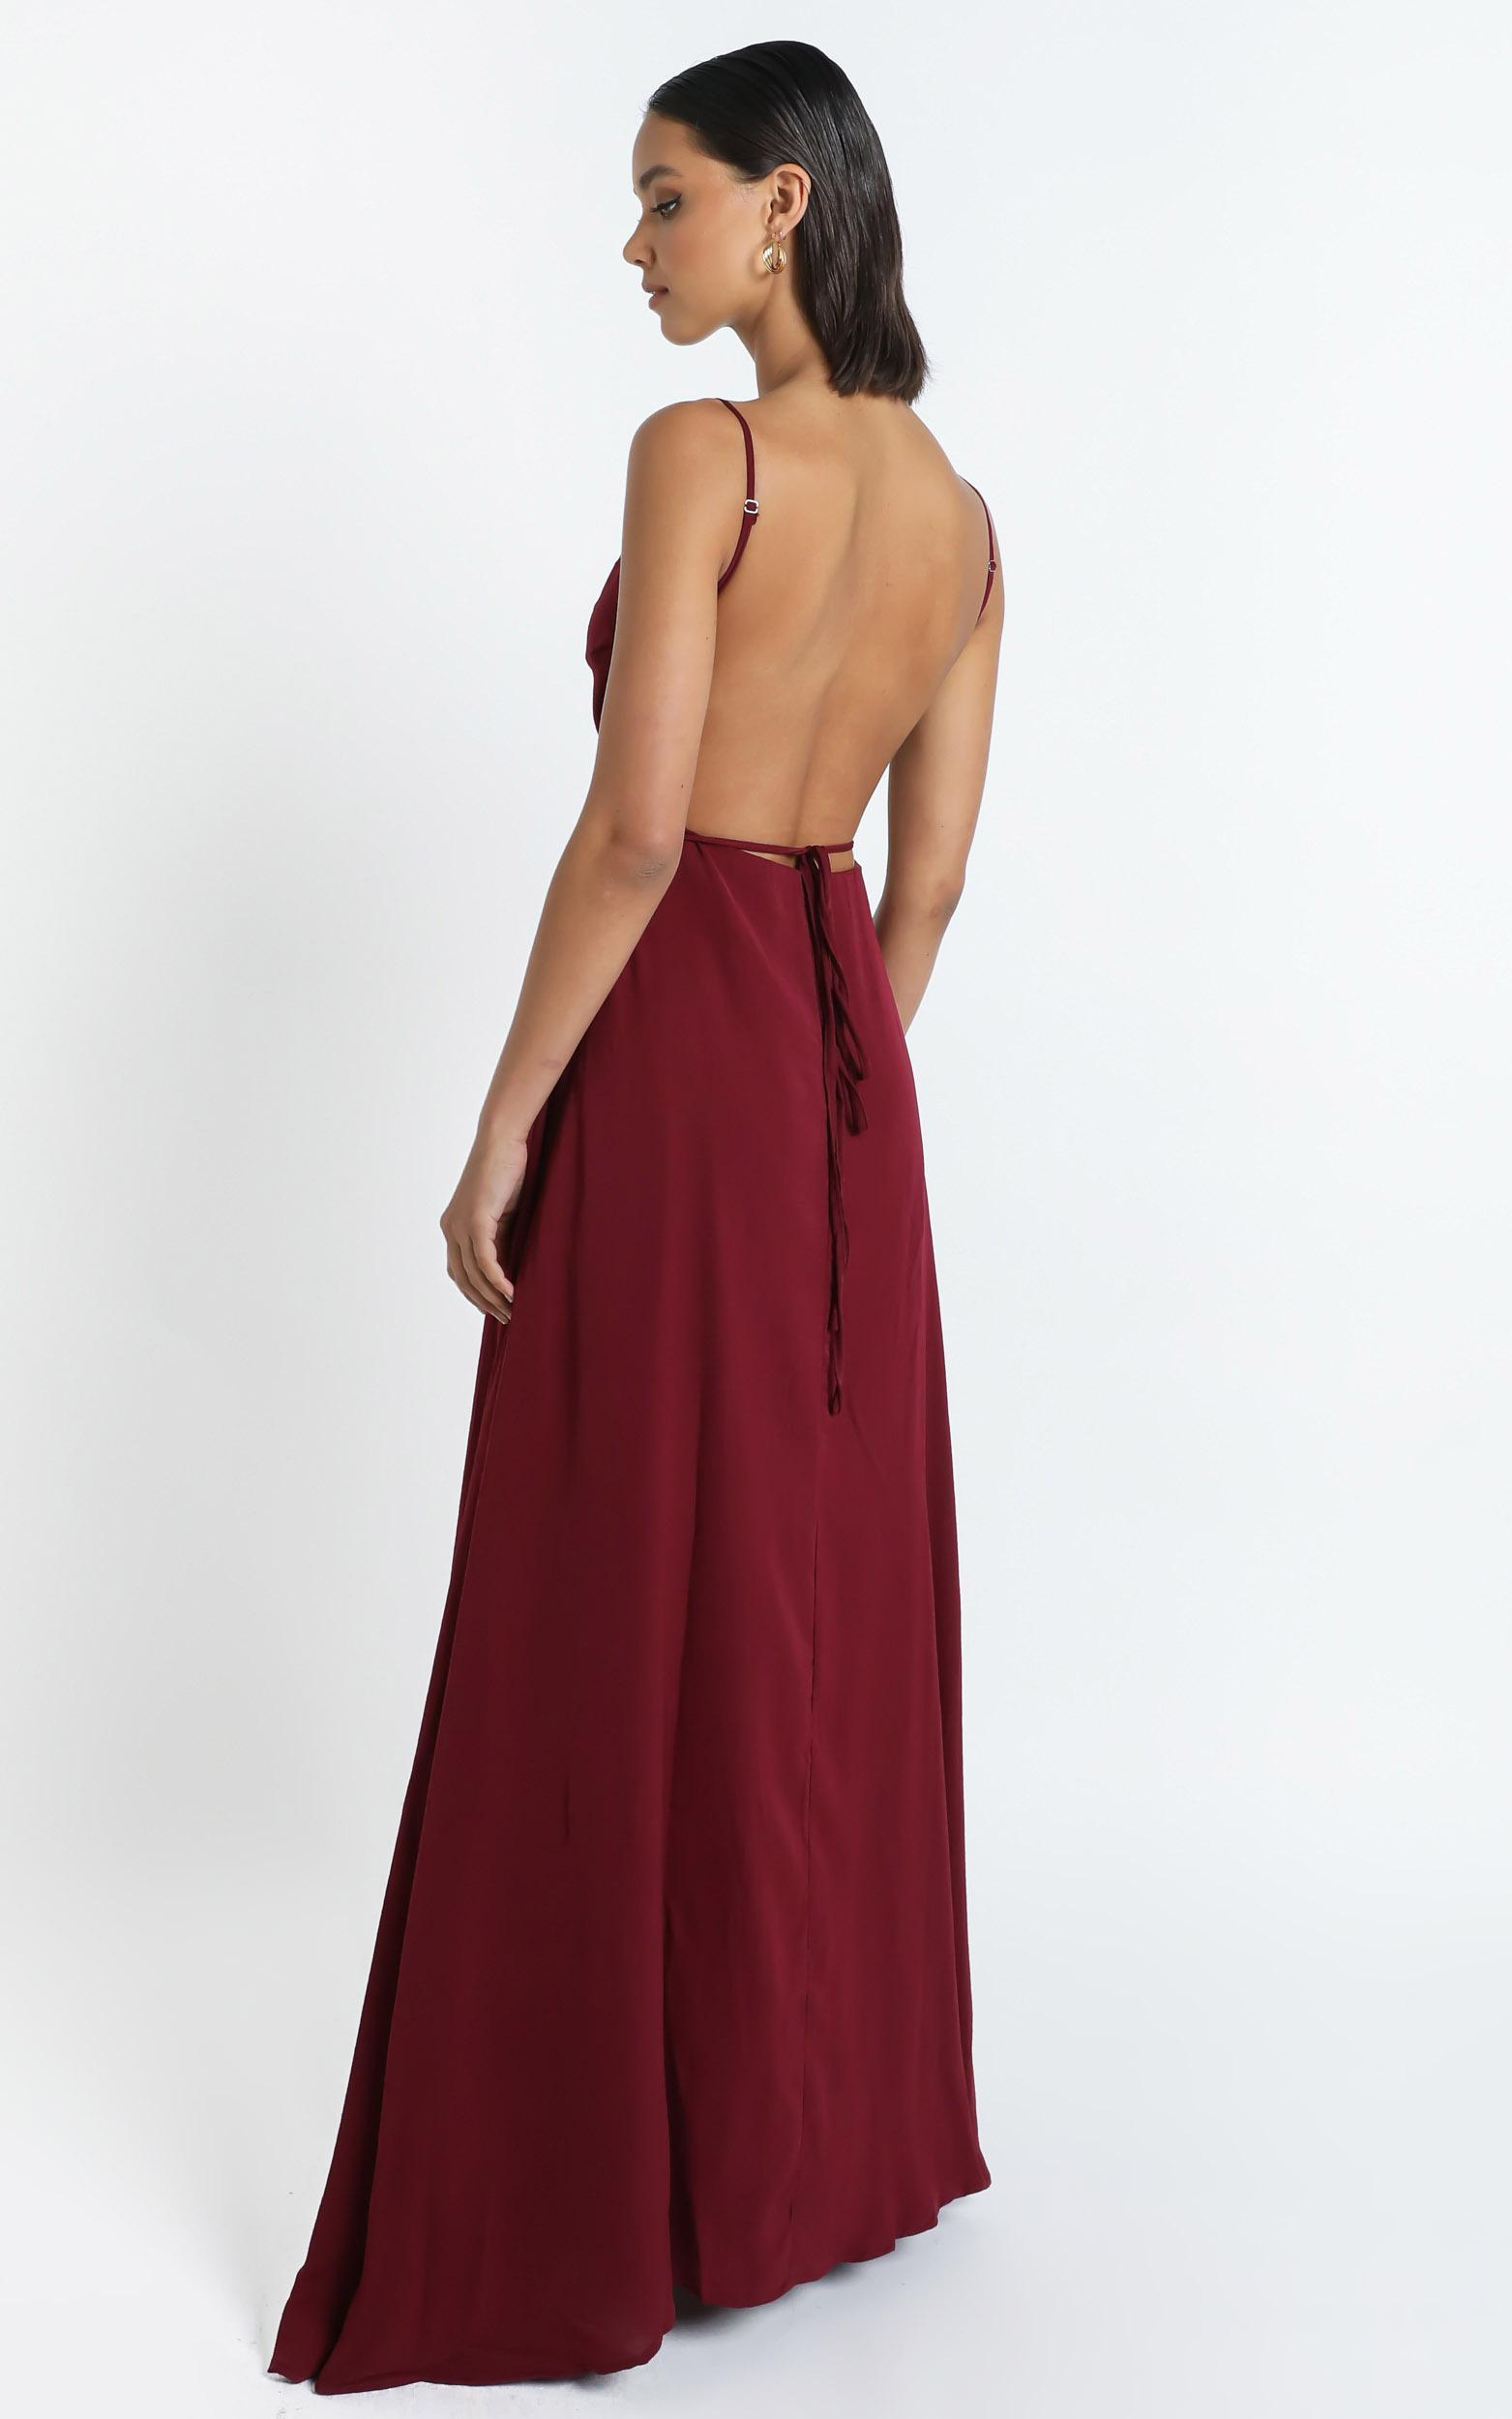 Starry eyes sparkling Dress In wine satin - 20 (XXXXL), Wine, hi-res image number null